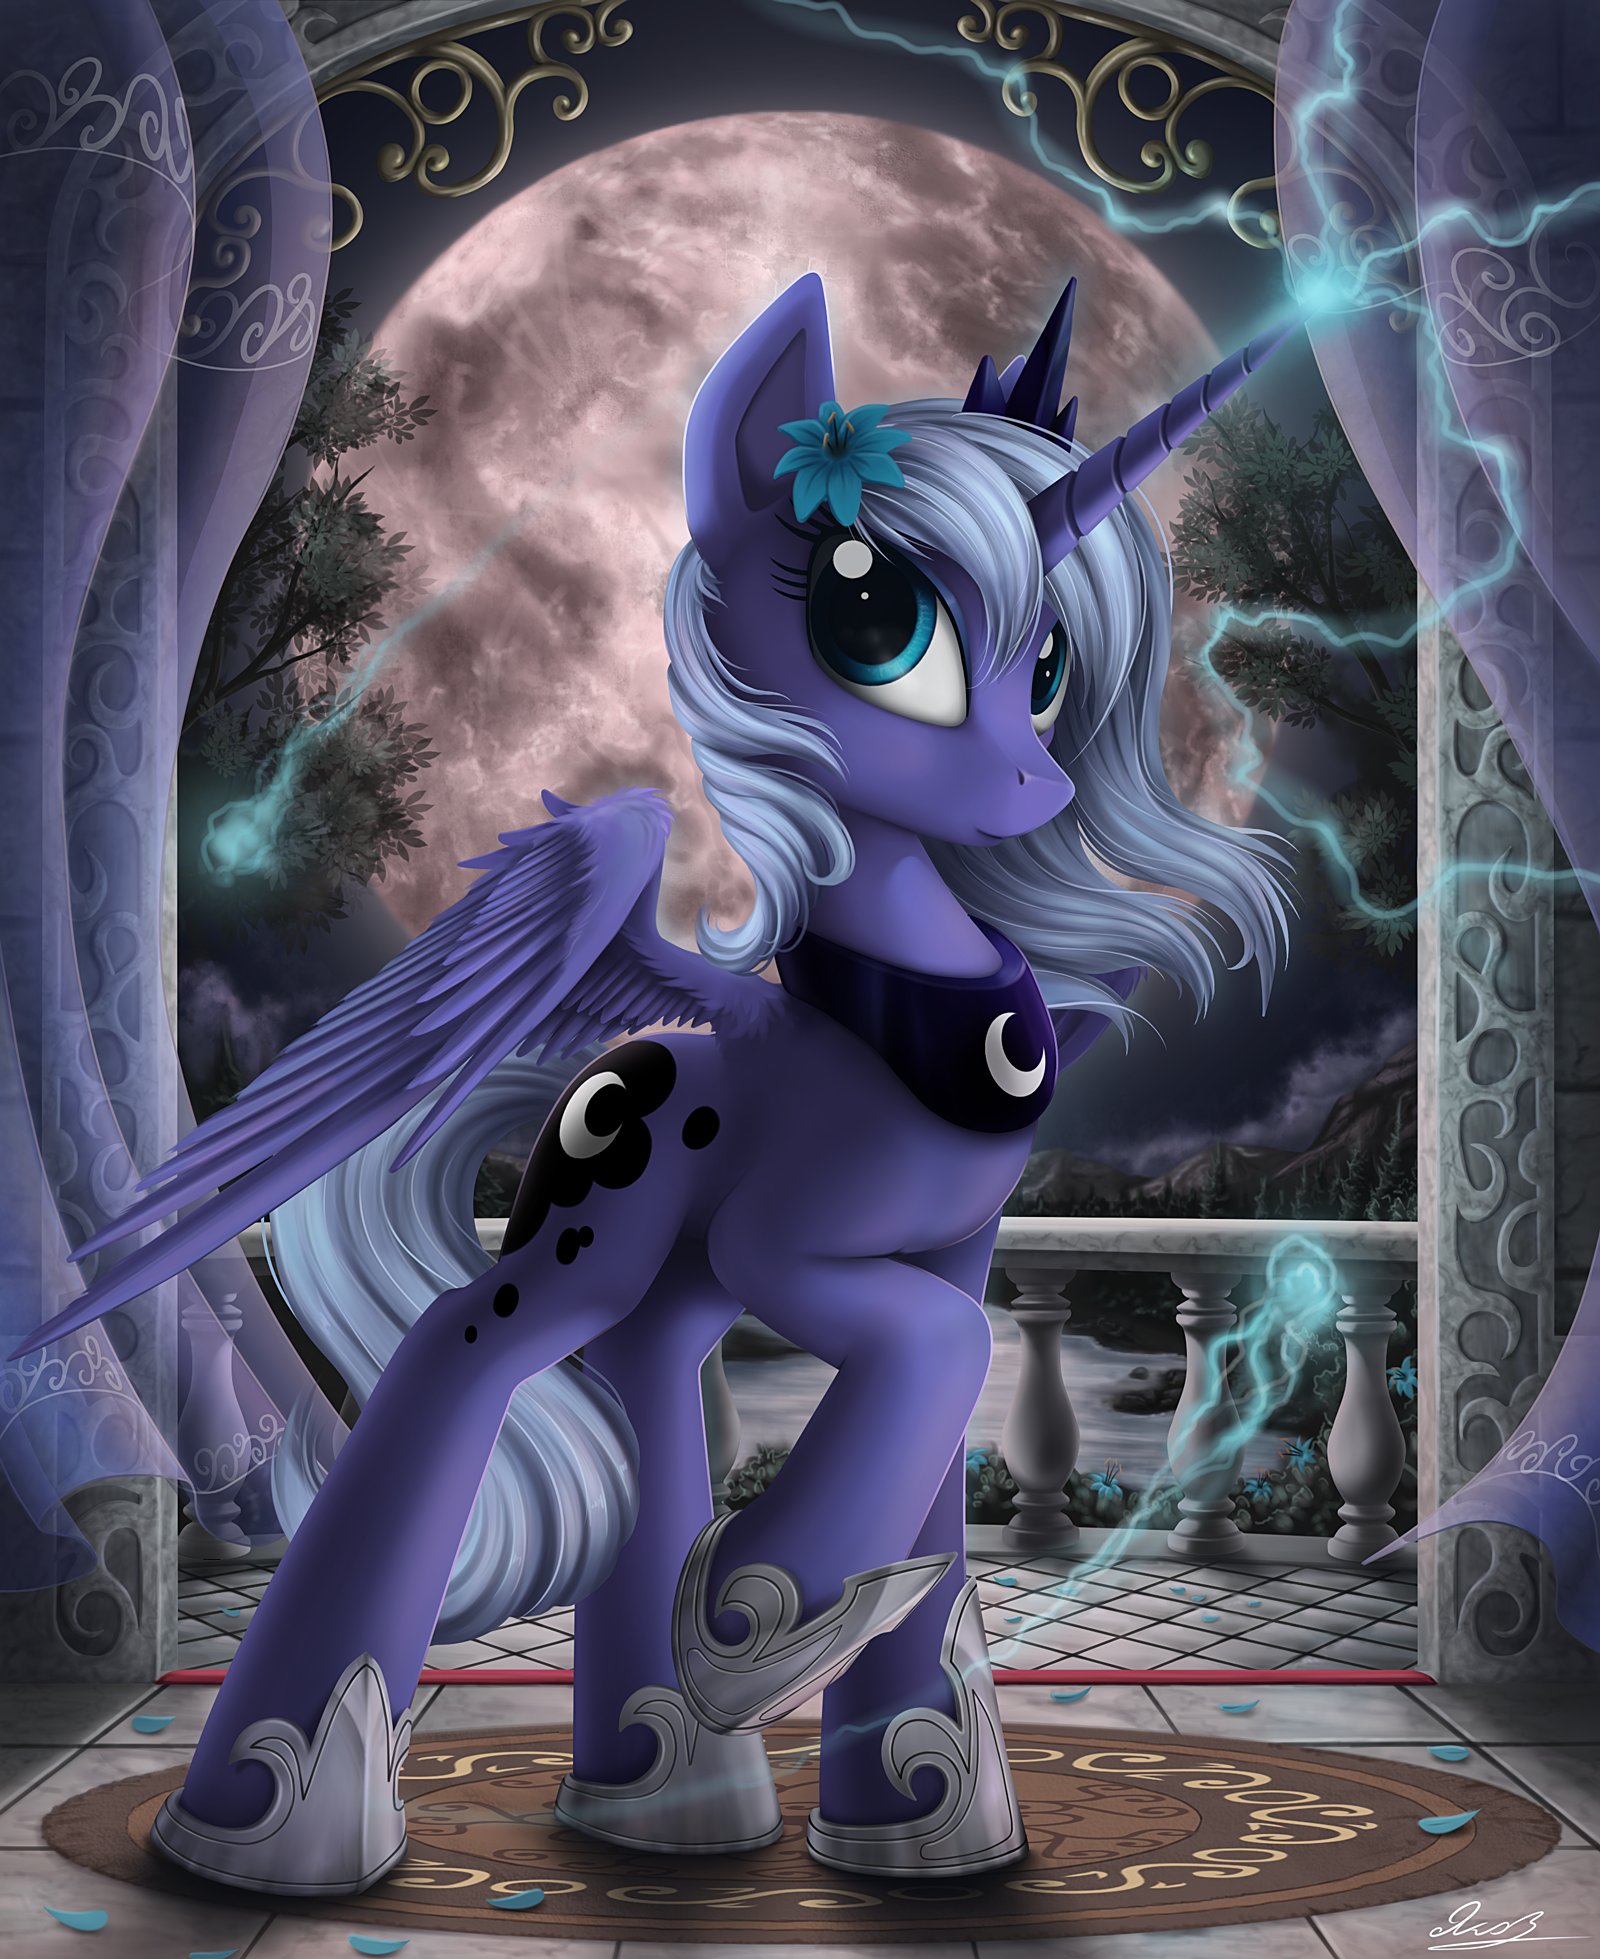 just luna by yakovlev vad-d6l7xlg